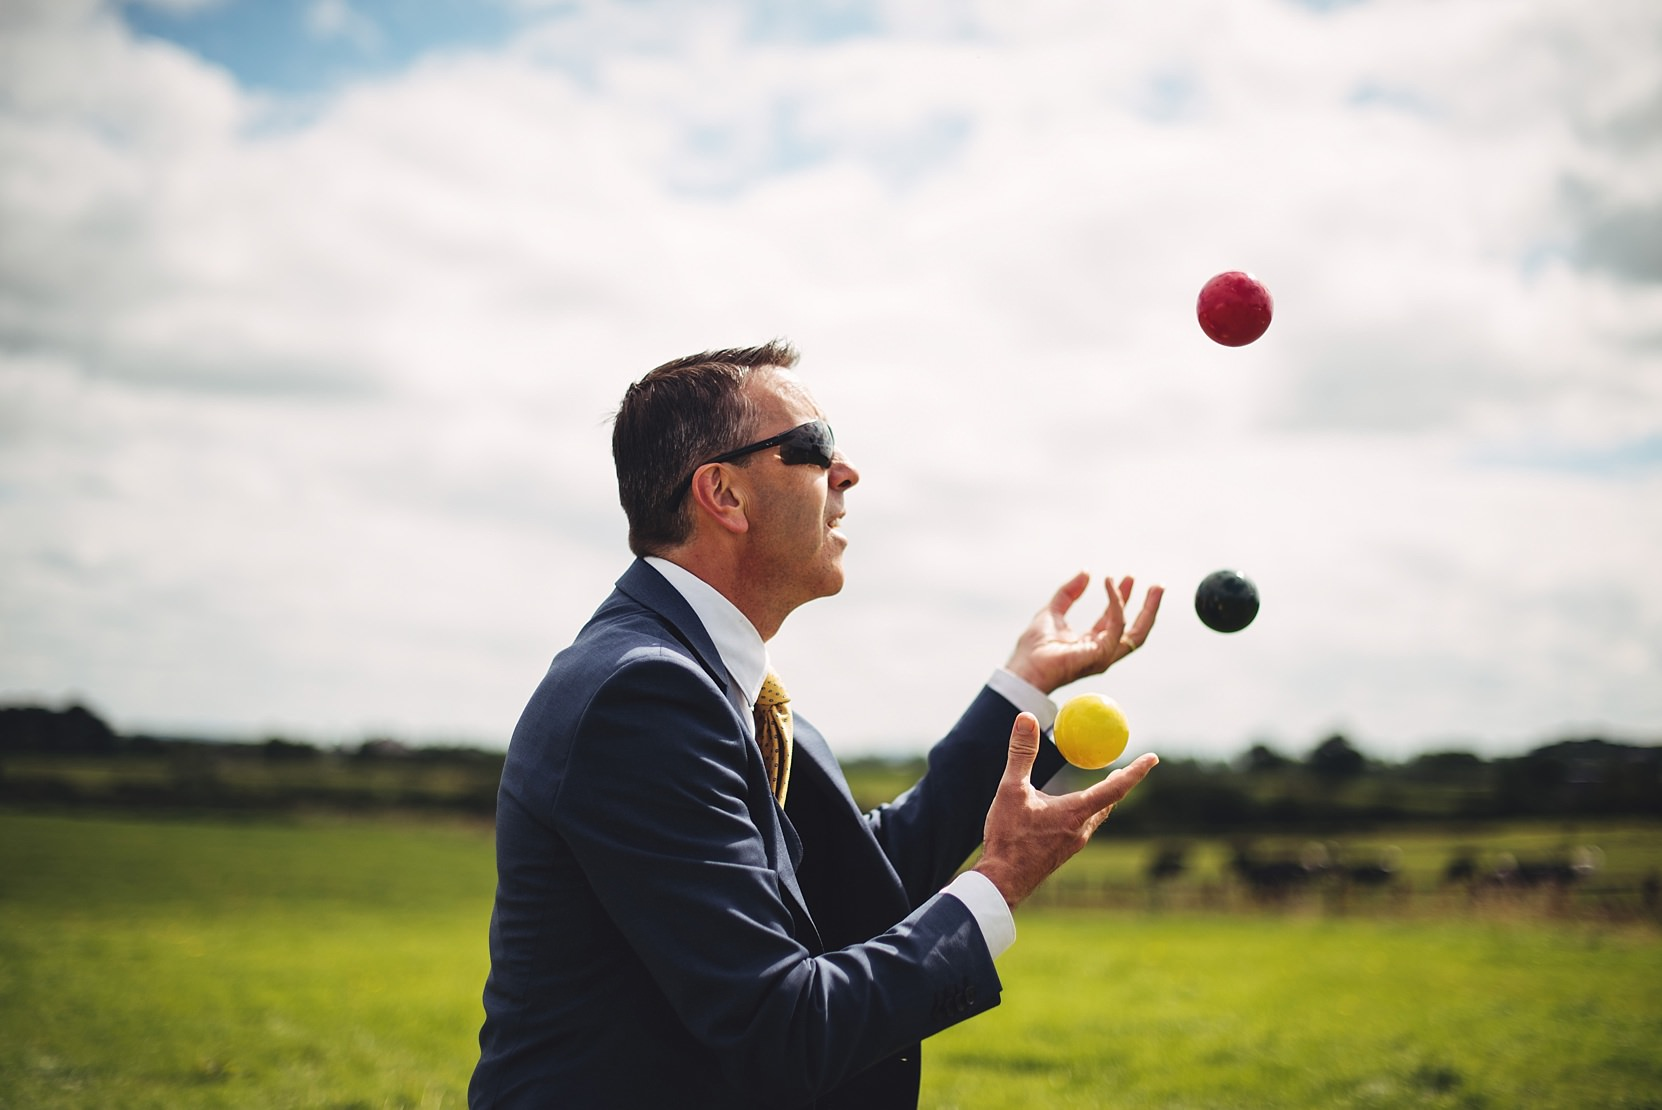 The best man juggling